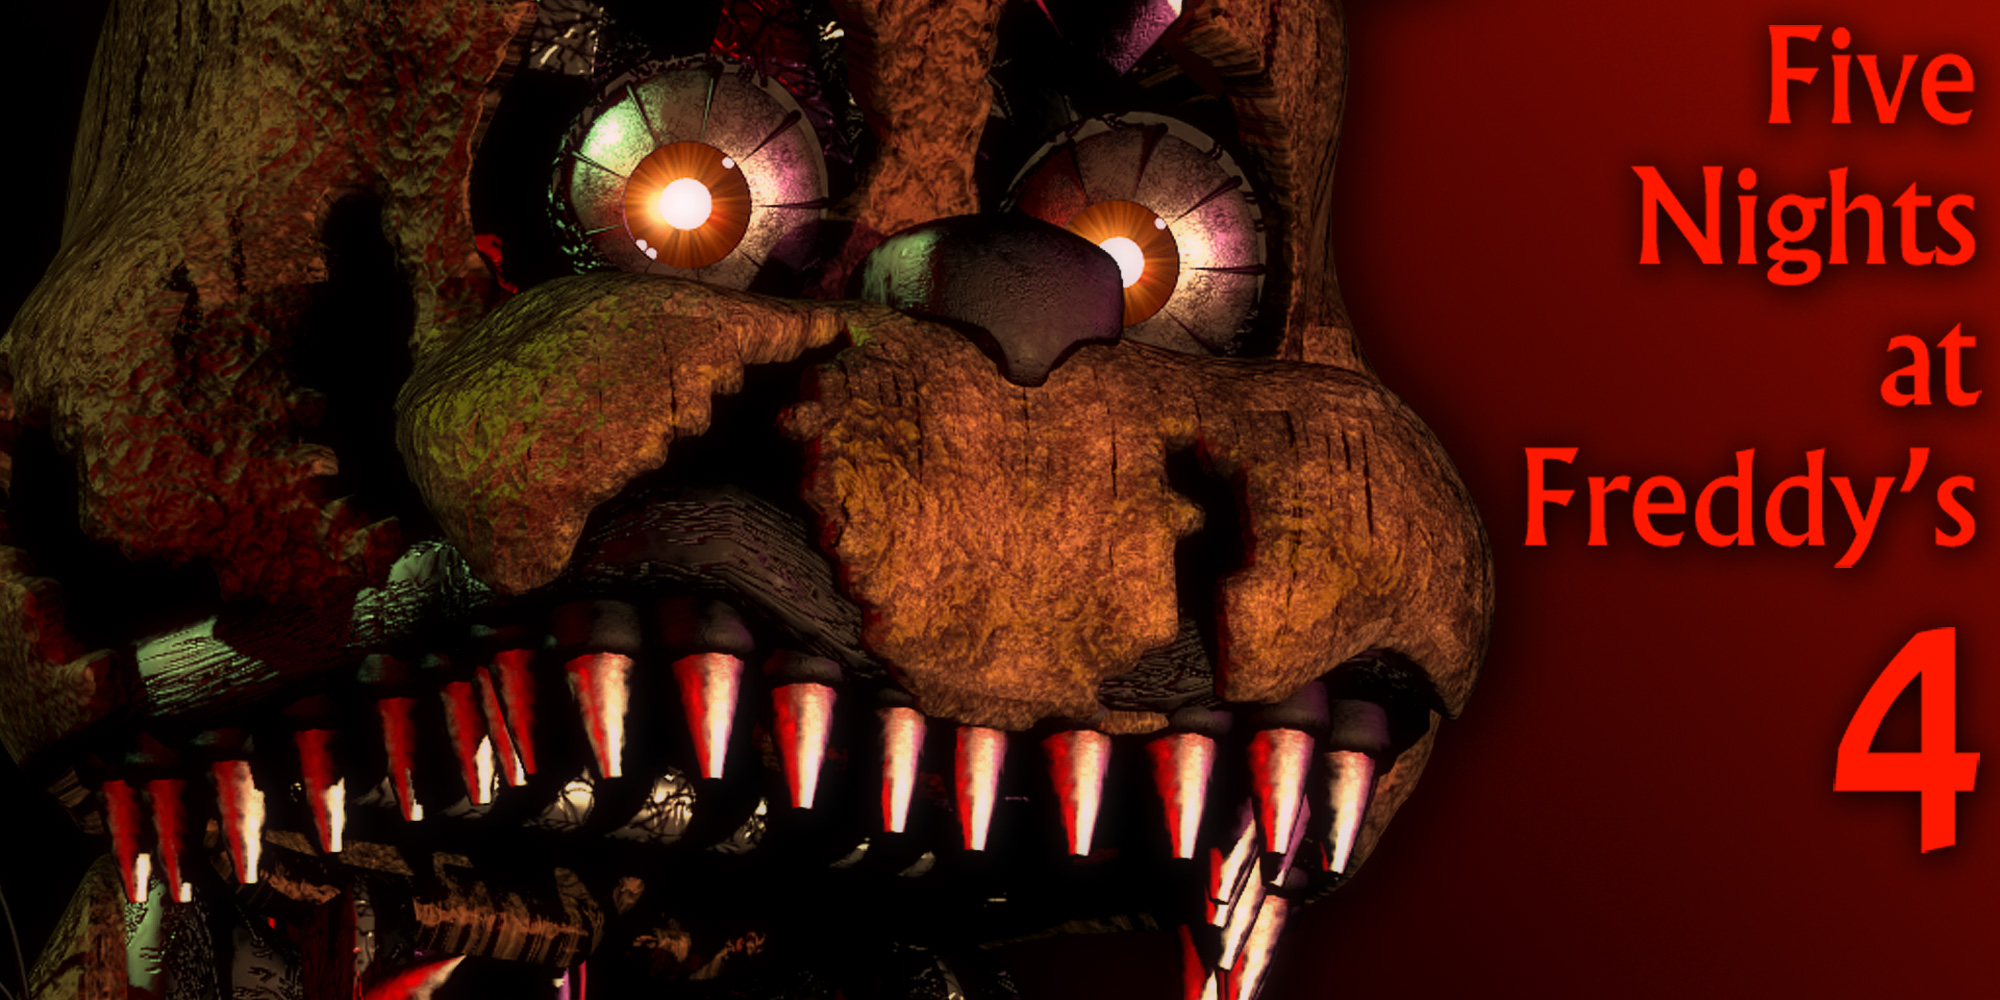 5 Nights At Freddy's Chica five nights at freddy's 4   nintendo switch download